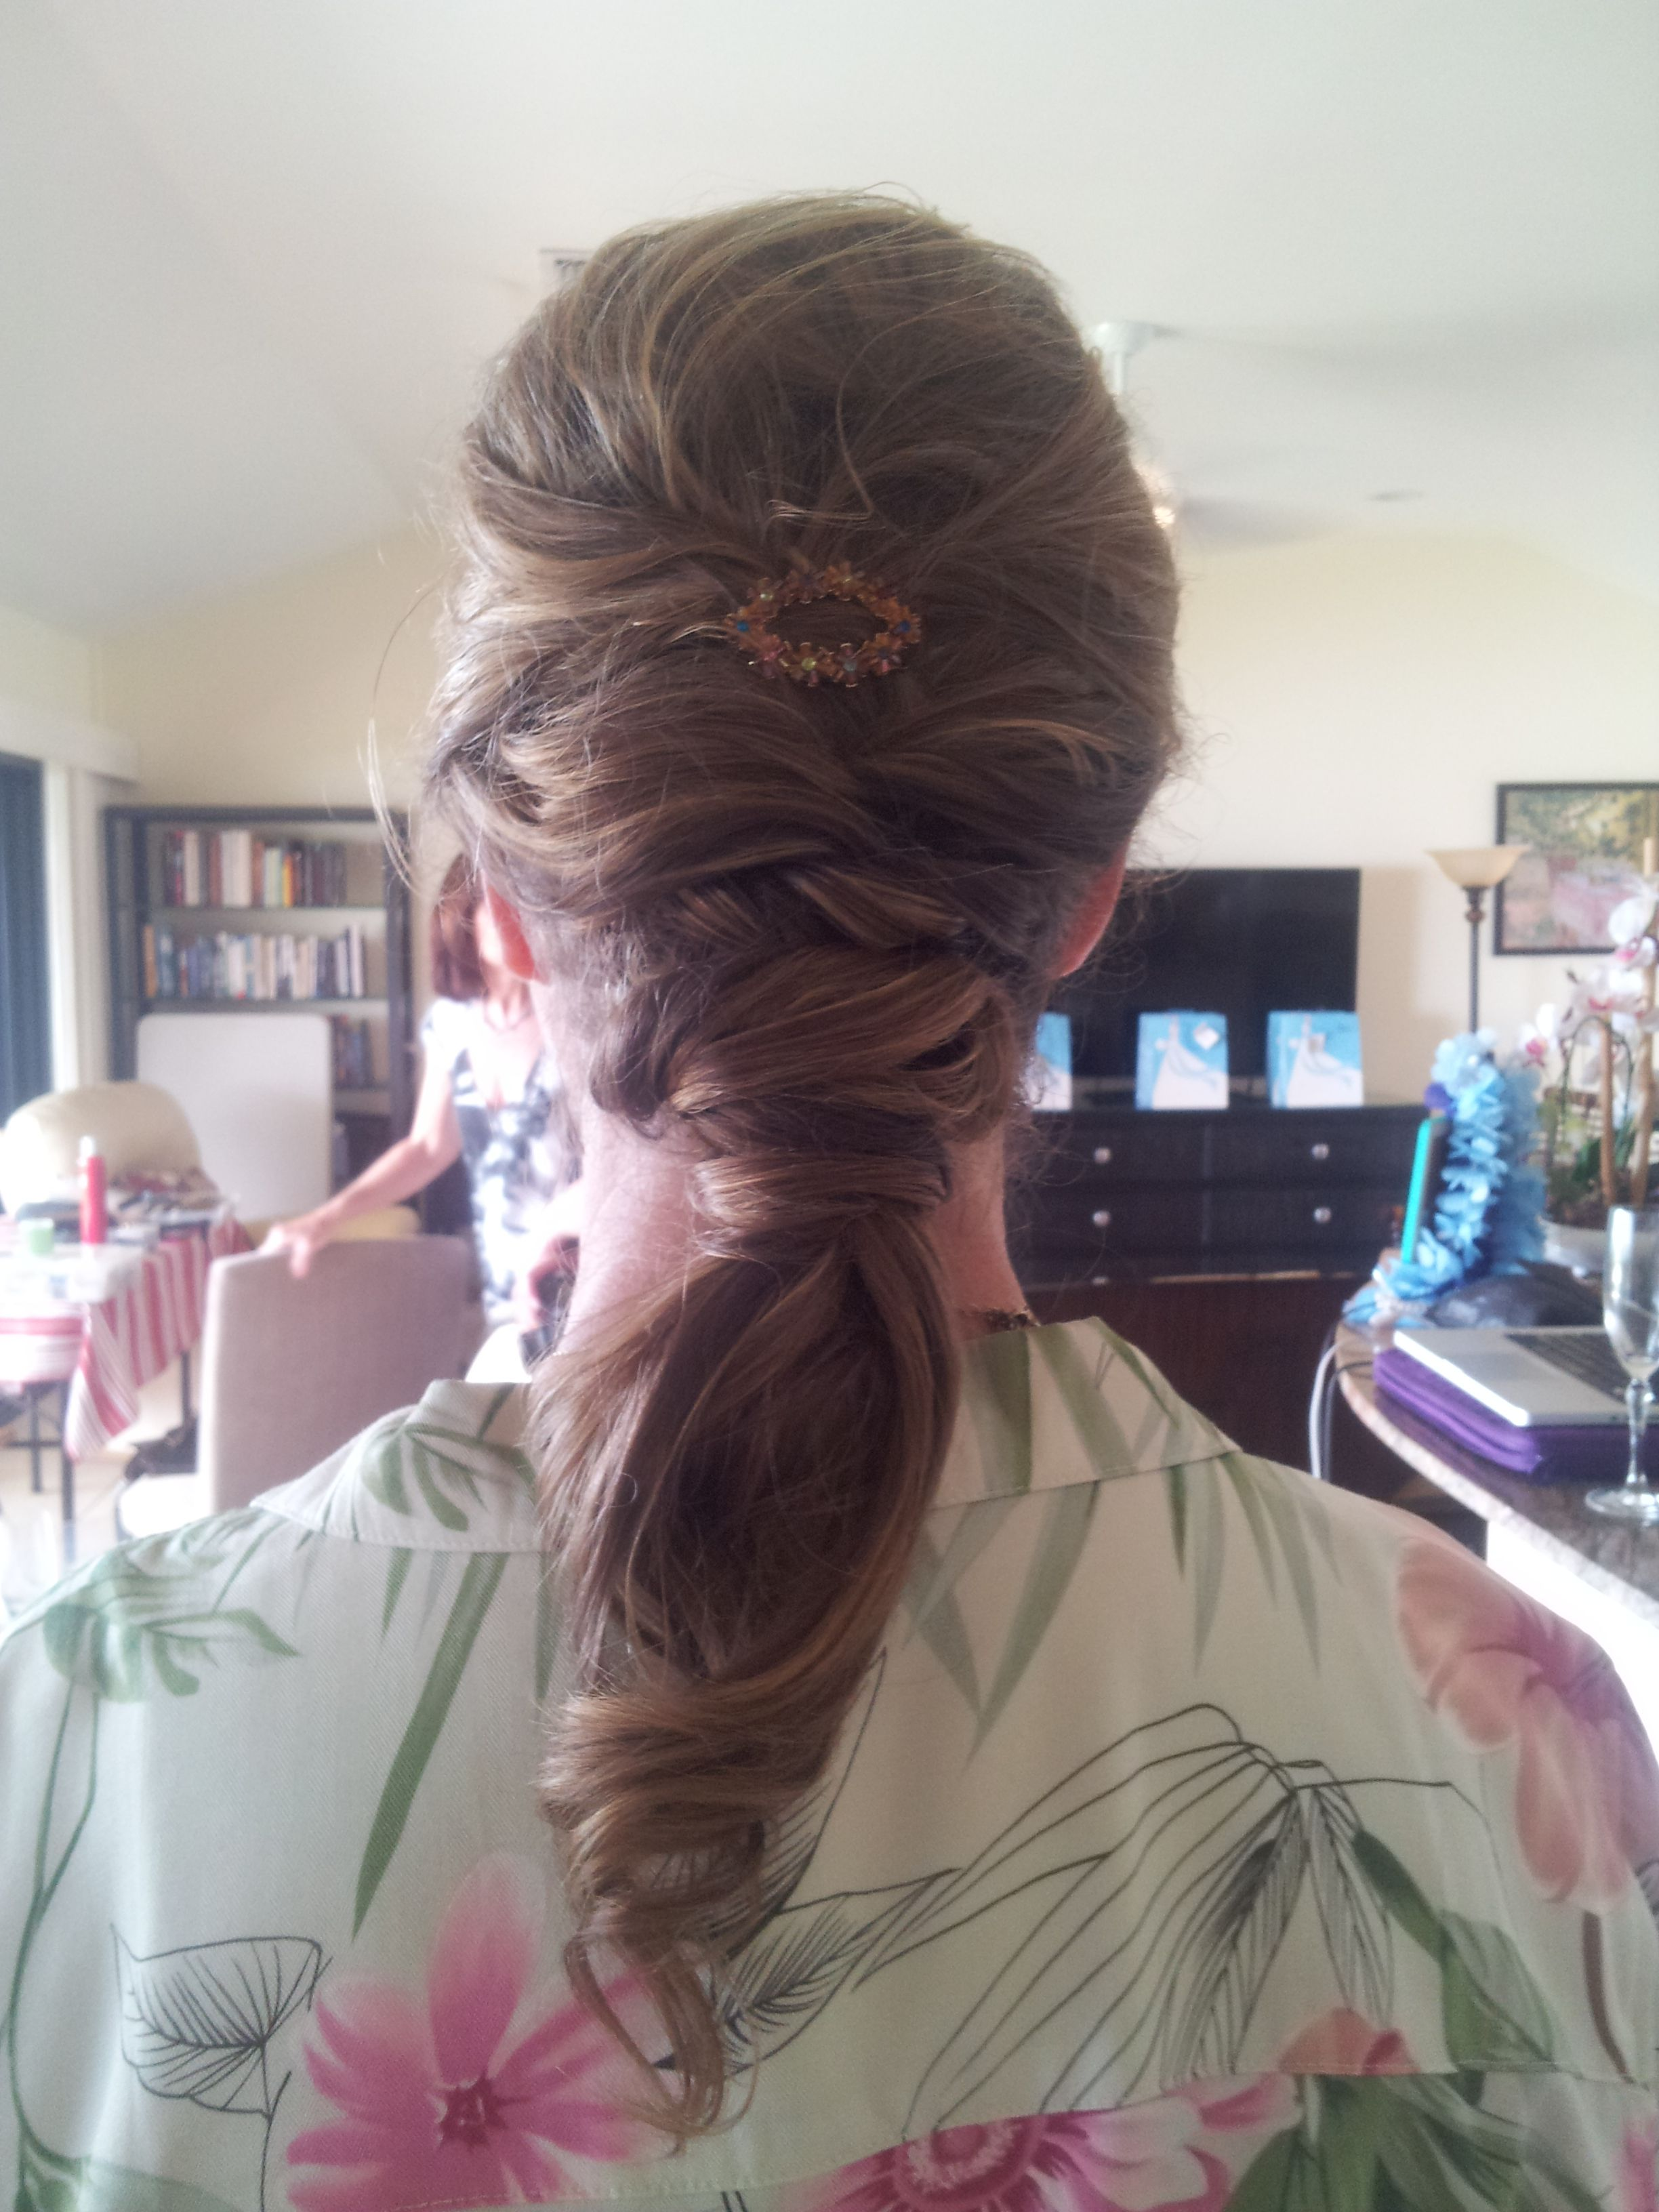 Updo from Maui